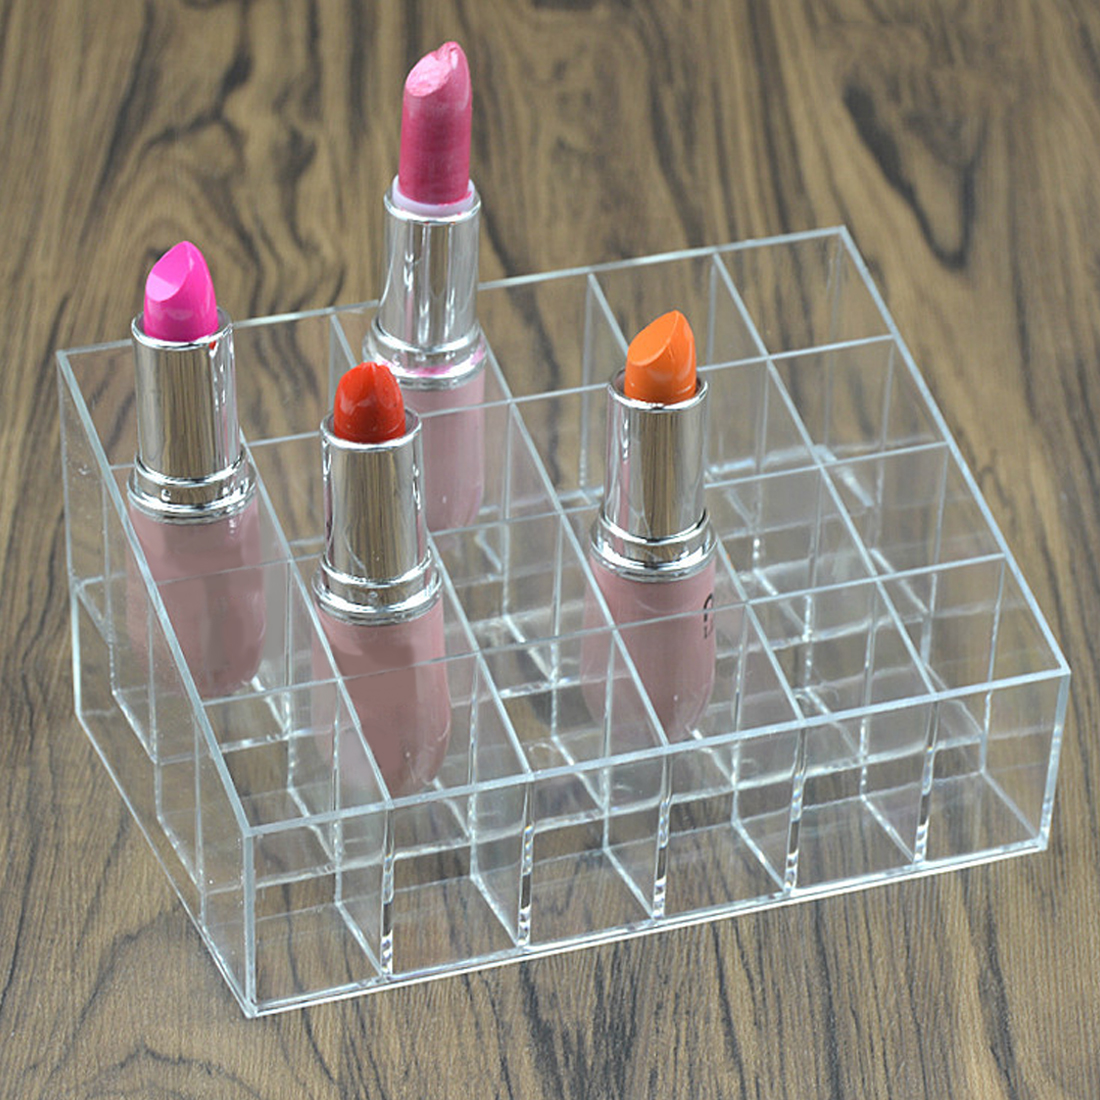 Organiser Acrylic Makeup Organizer For Cosmetic Display